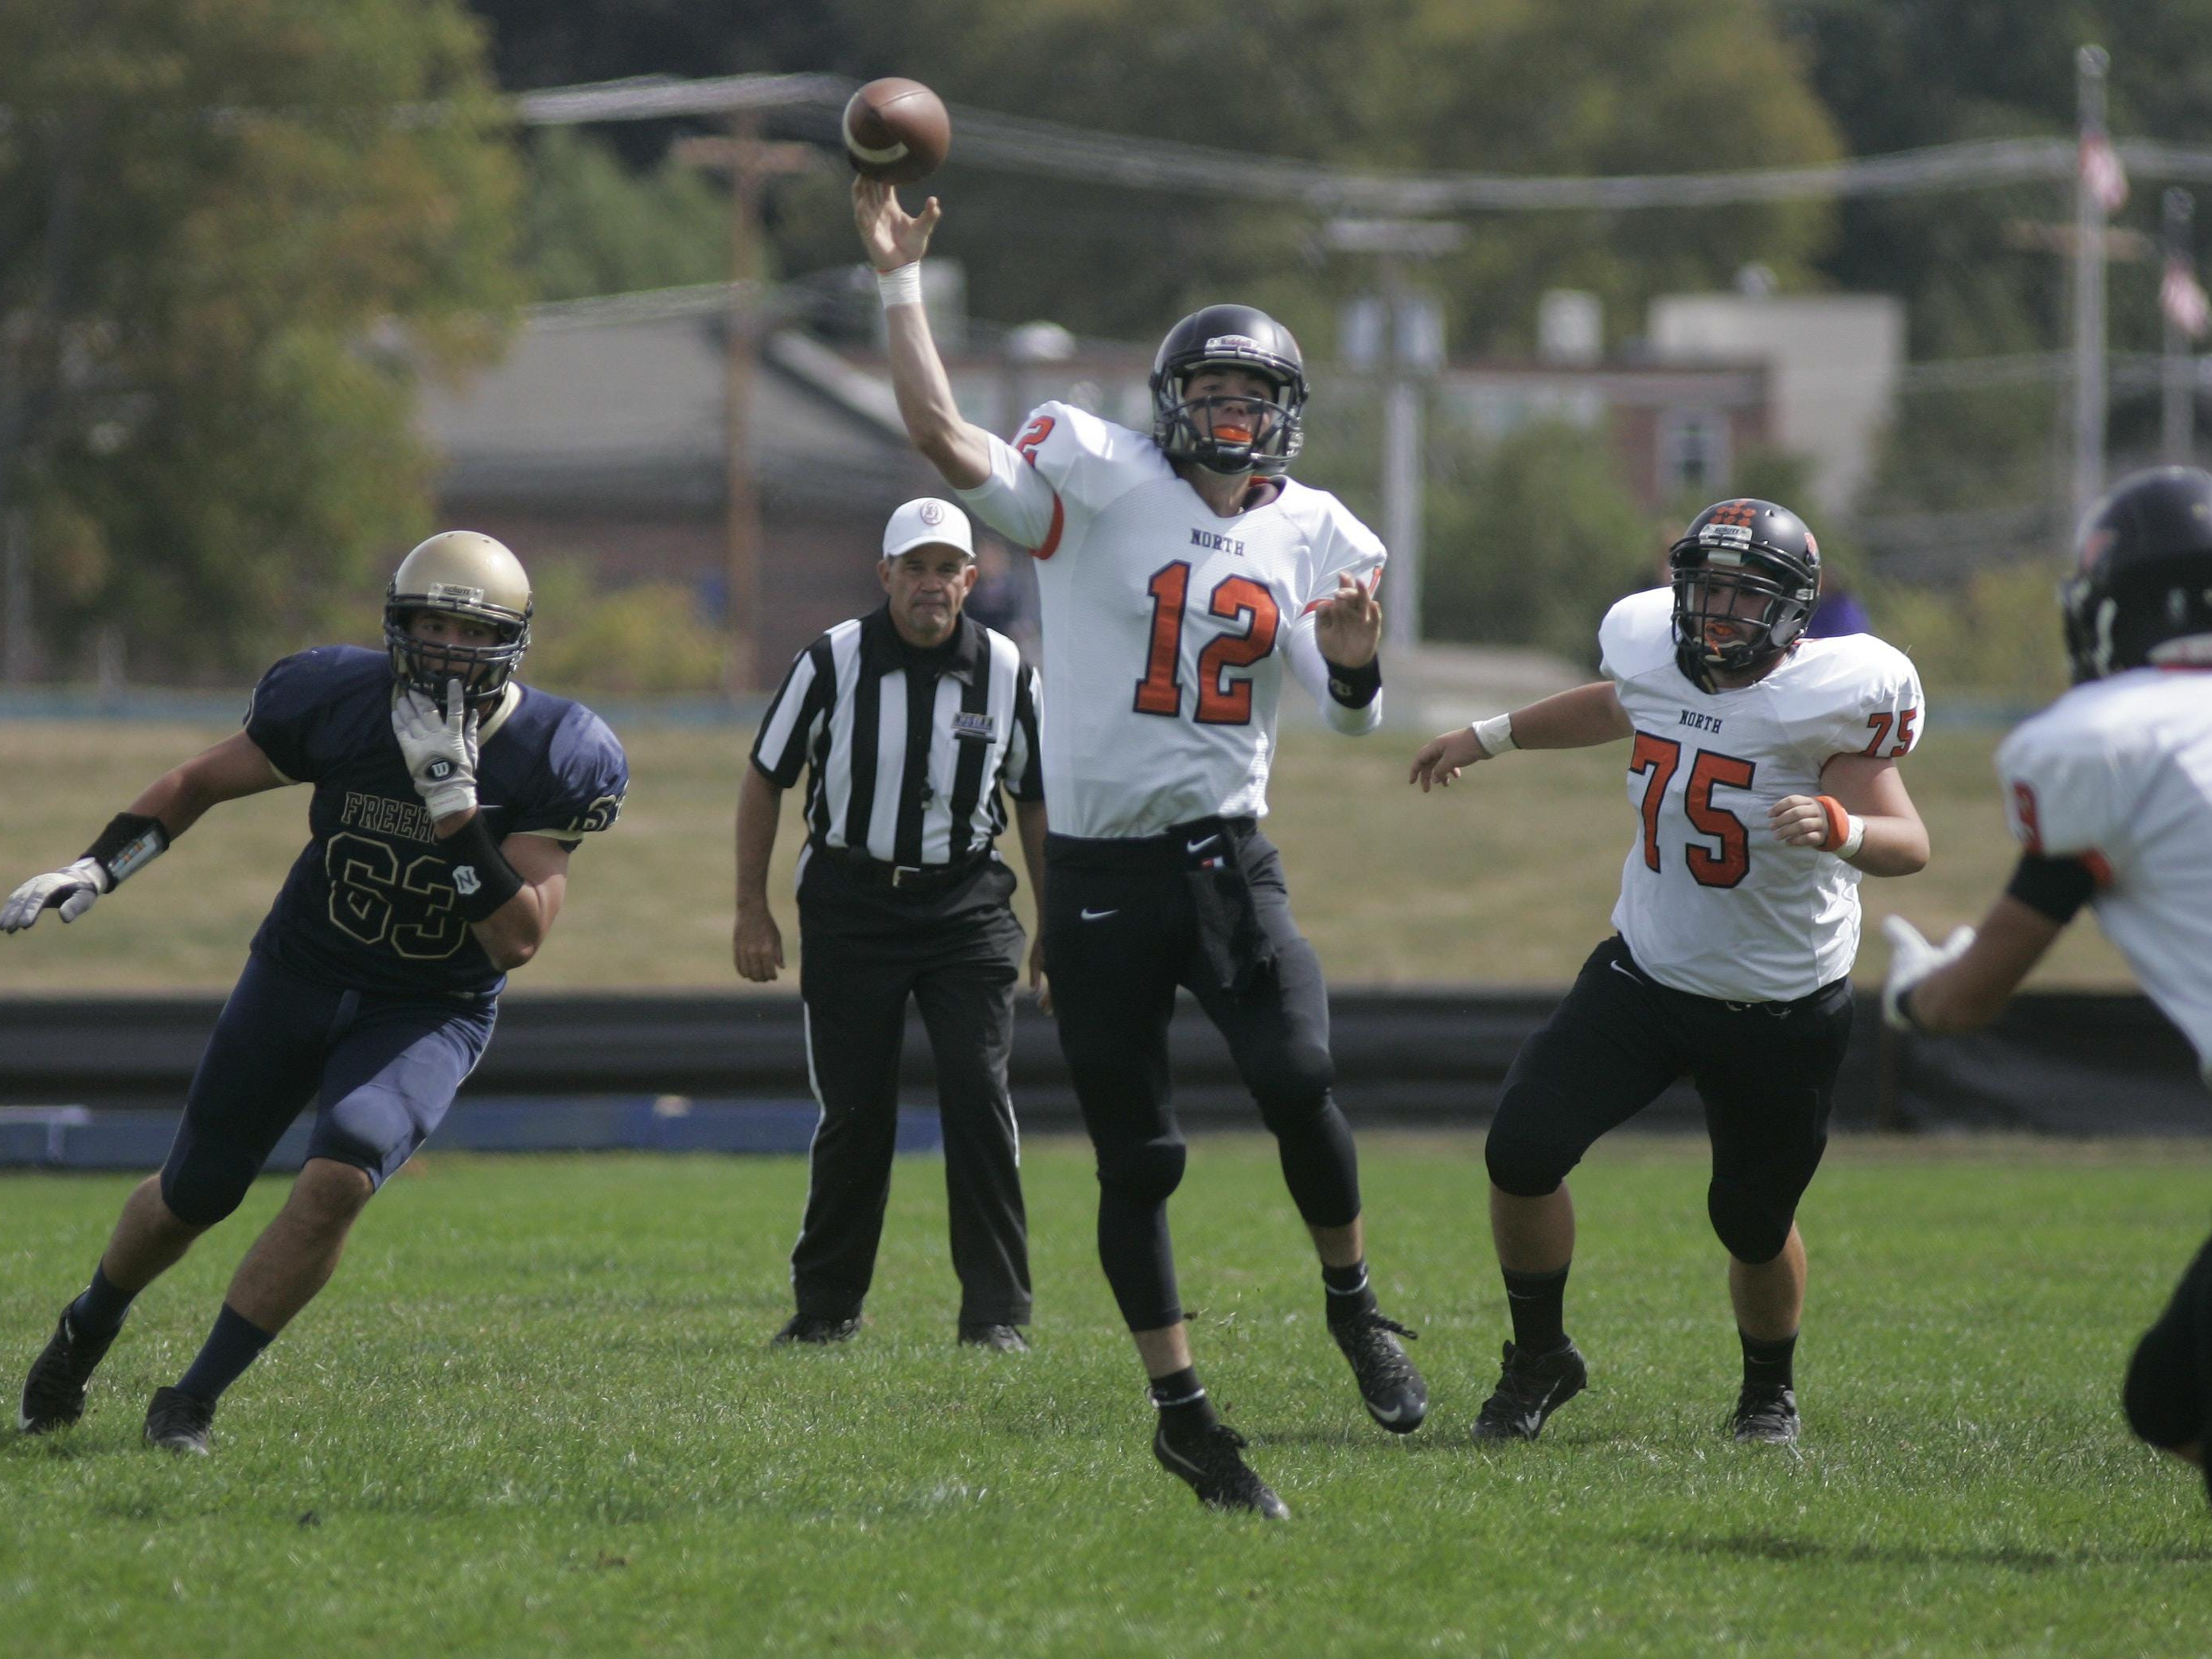 Middletown North High School quarterback Donald Glenn launches a pass against Freehold's defense during a Shore Conference game, Saturday afternoon, at Freehold.